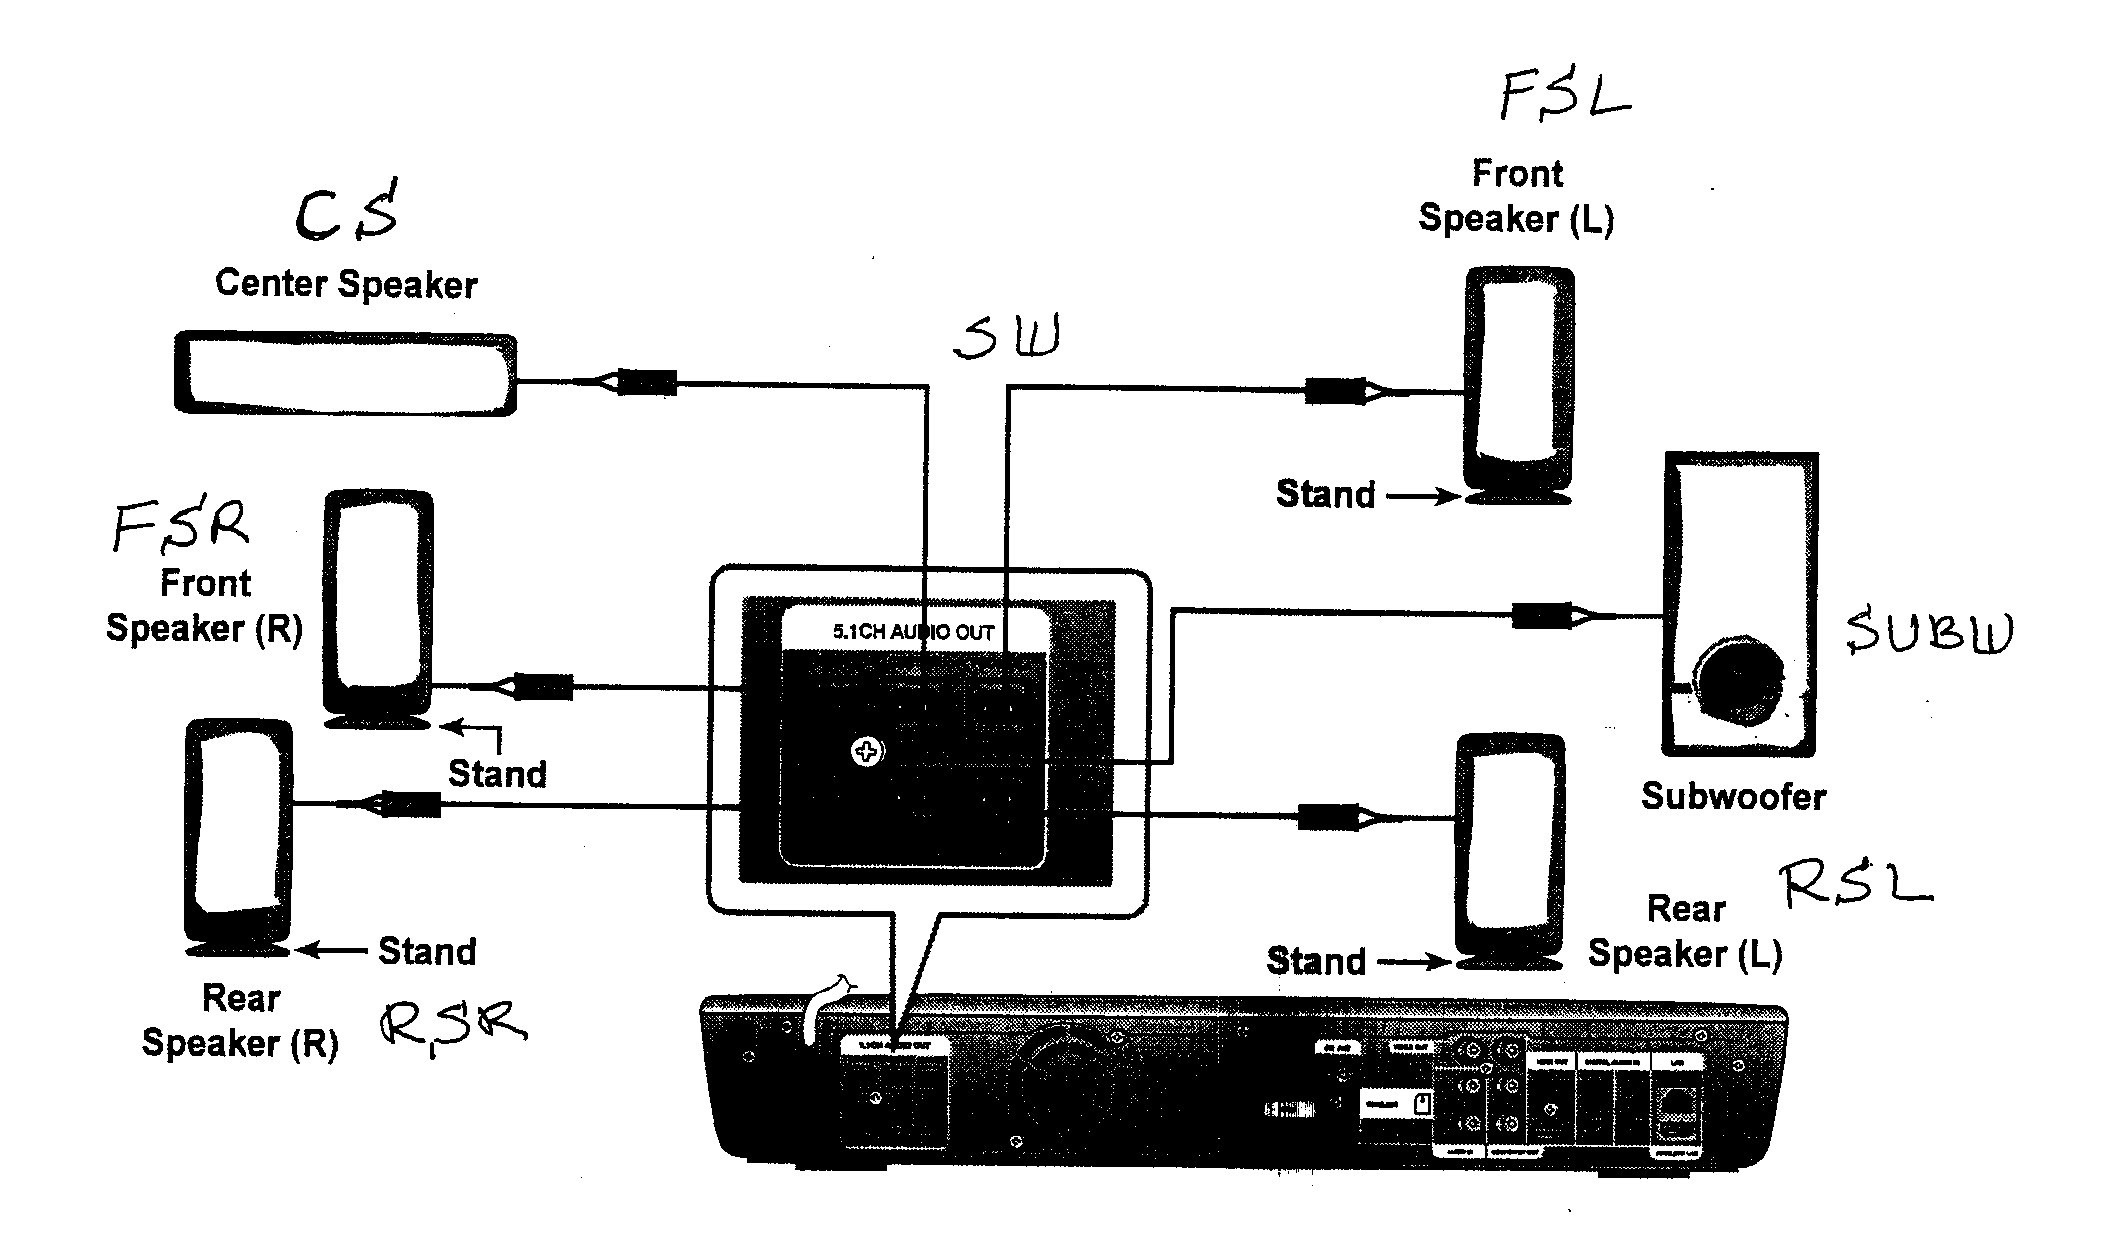 parts of a speaker diagram ge monogram refrigerator 301 moved permanently